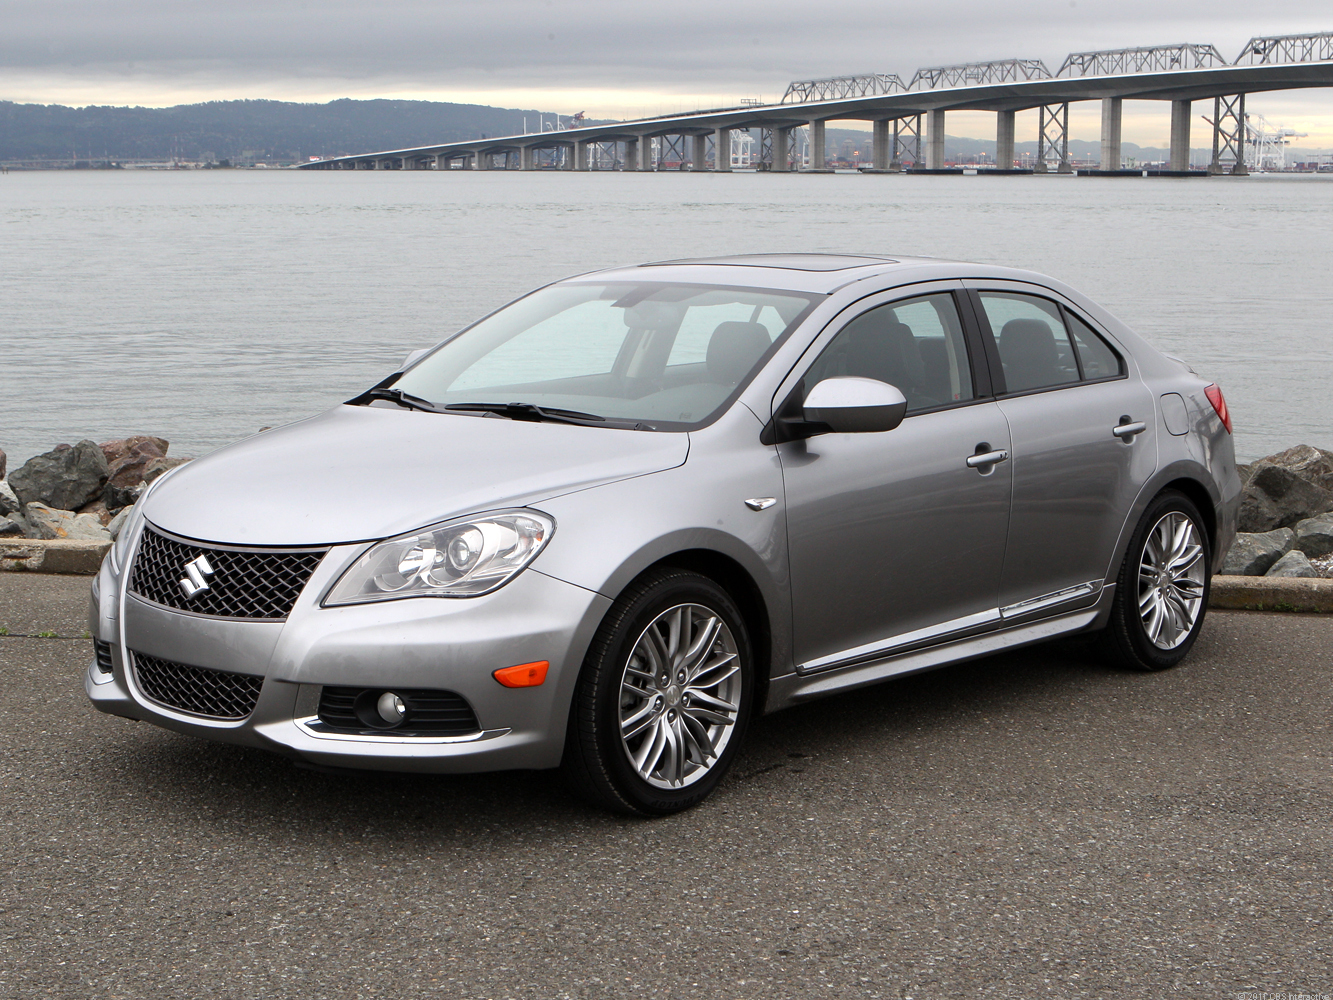 Most of the Kizashi Sport's upgrades over the S come in the form of body work, chrome bright work, and the 18-inch wheels.